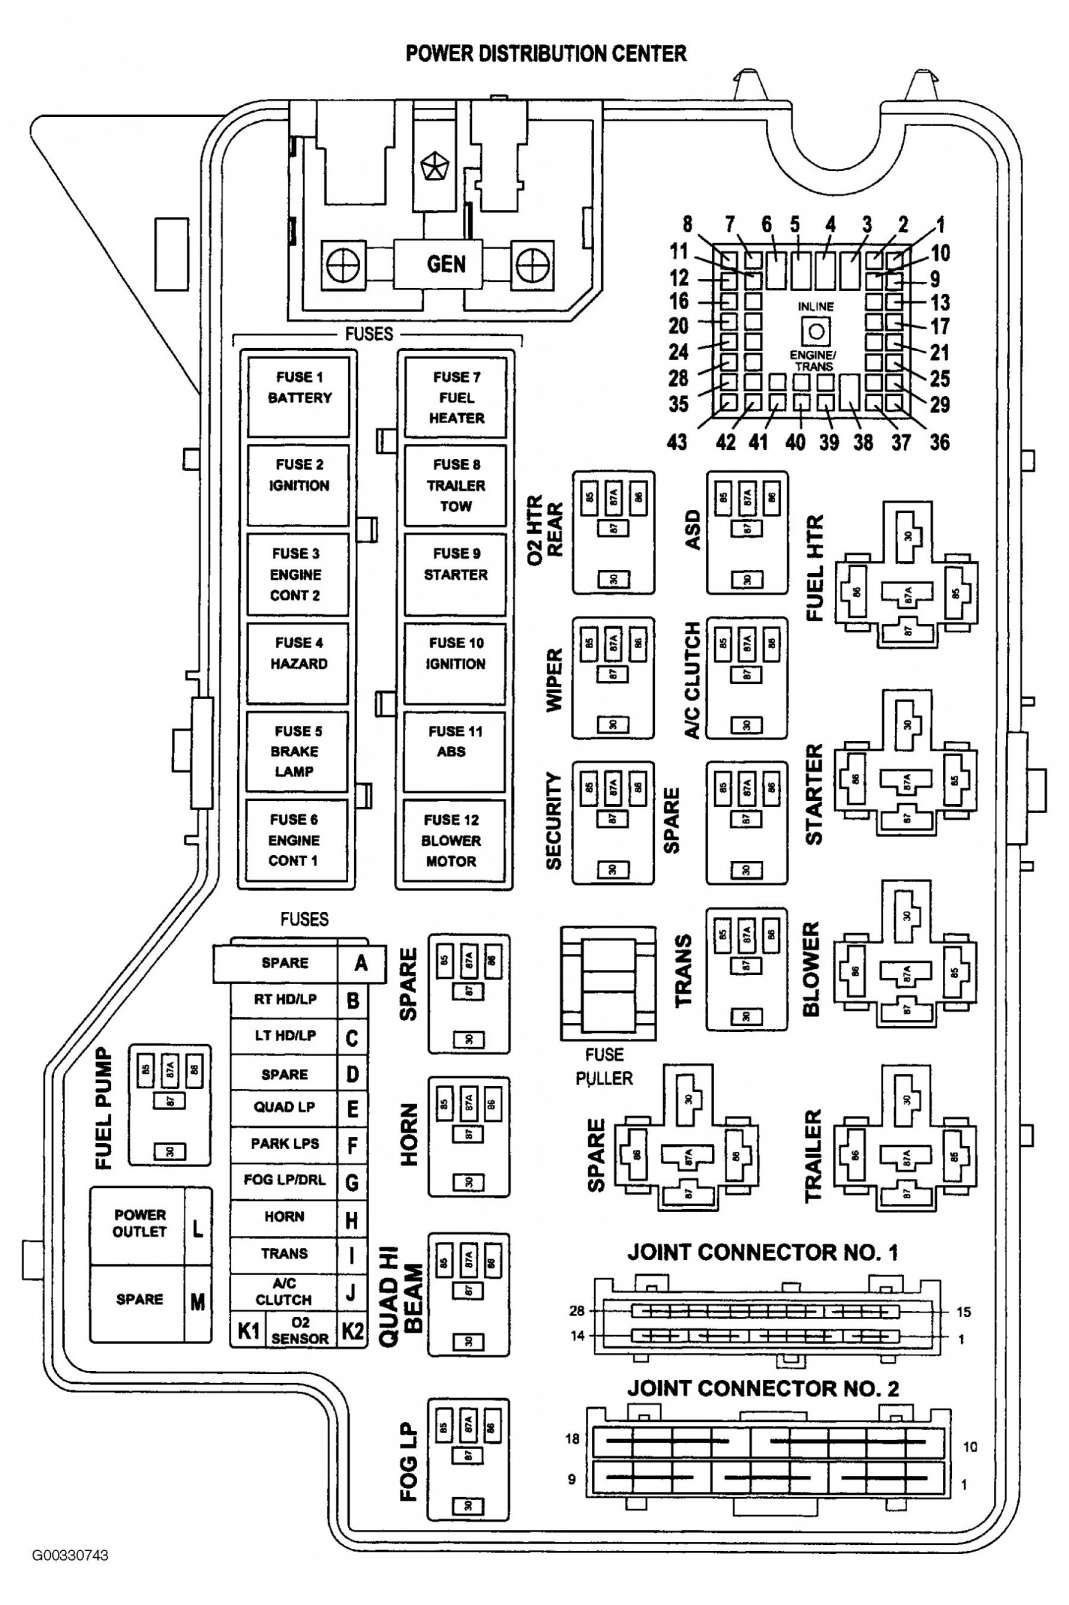 17+ 2002 dodge ram truck fuse box diagram - truck diagram in 2020 ... dodge van fuse box 2011 dodge grand caravan fuse diagram pinterest